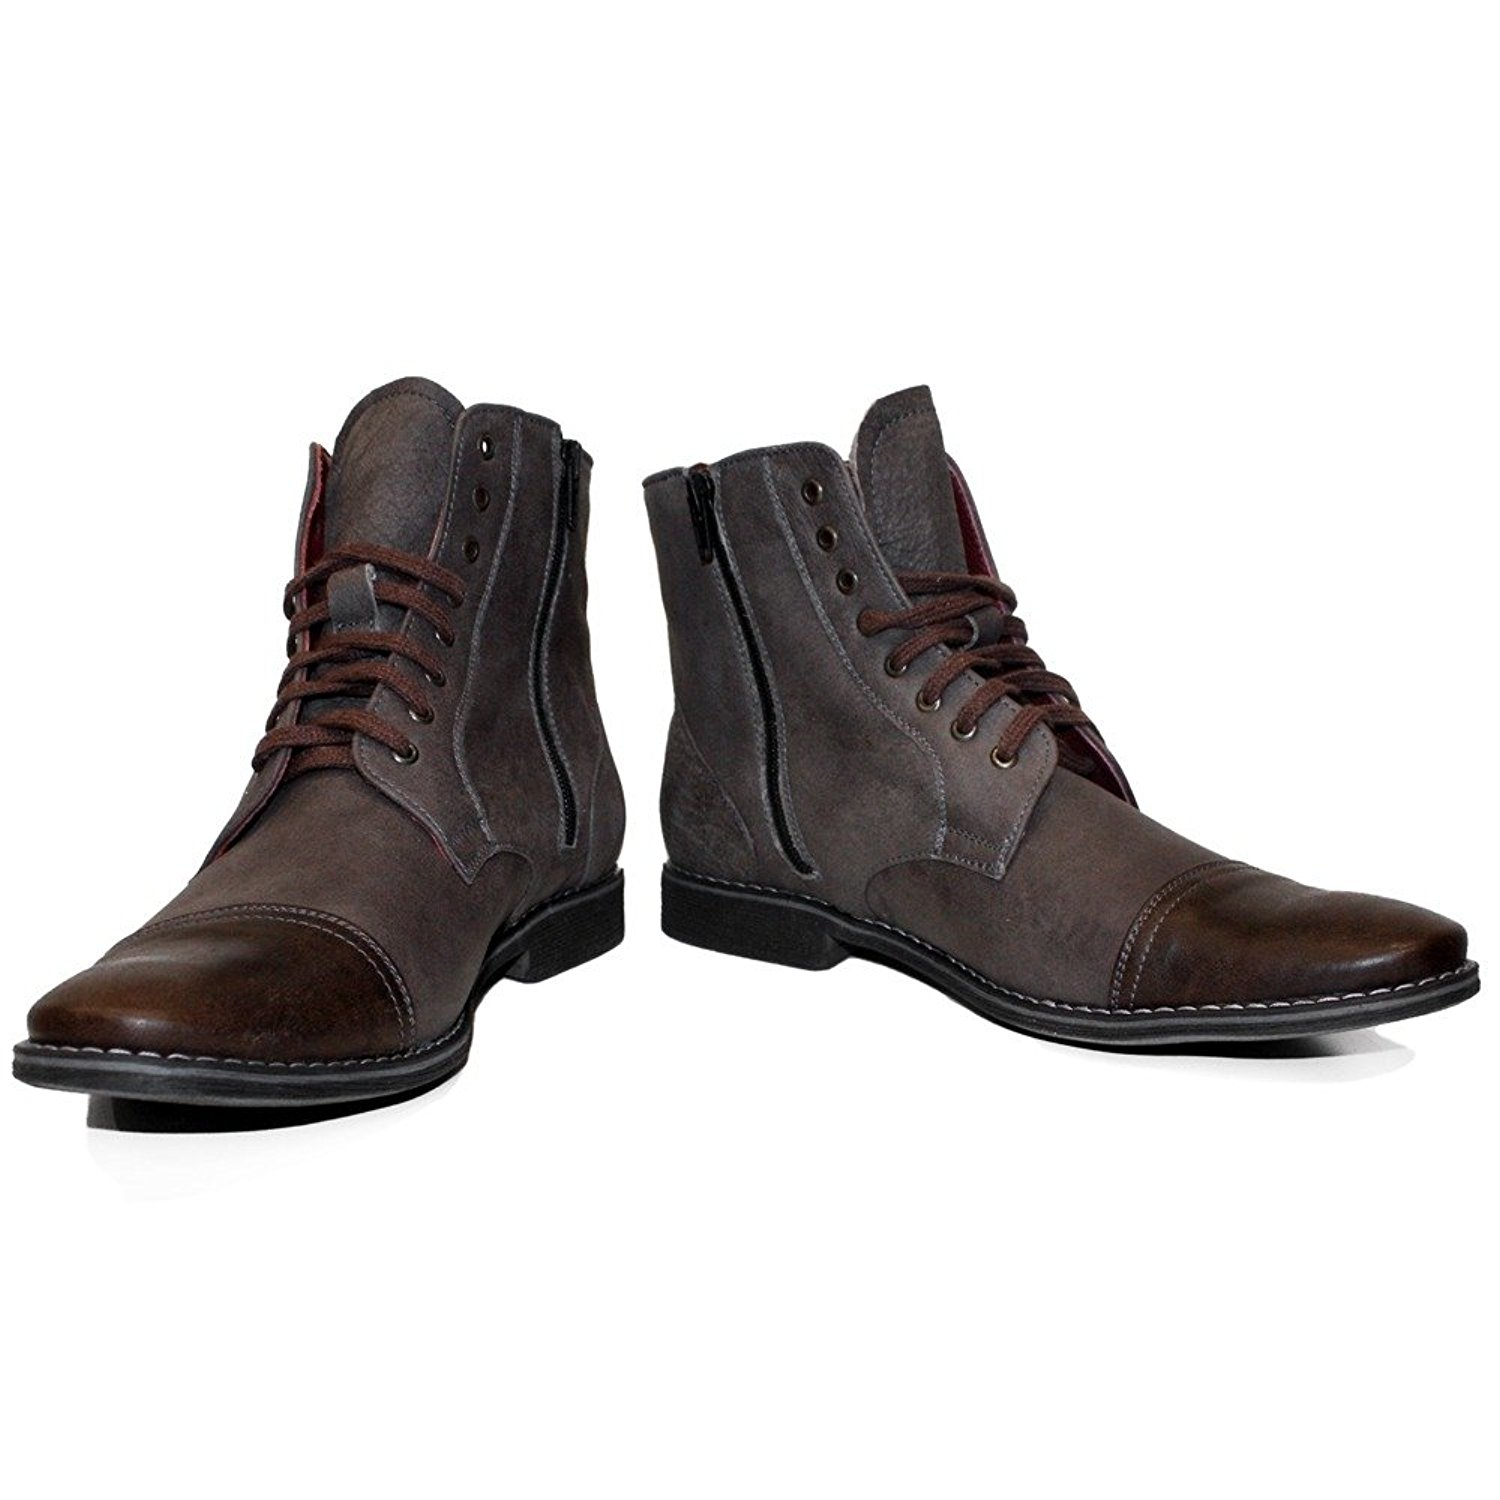 PeppeShoes Modello Muccato - Handmade Italian Mens Brown Ankle Boots - Cowhide Smooth Leather - Lace-up